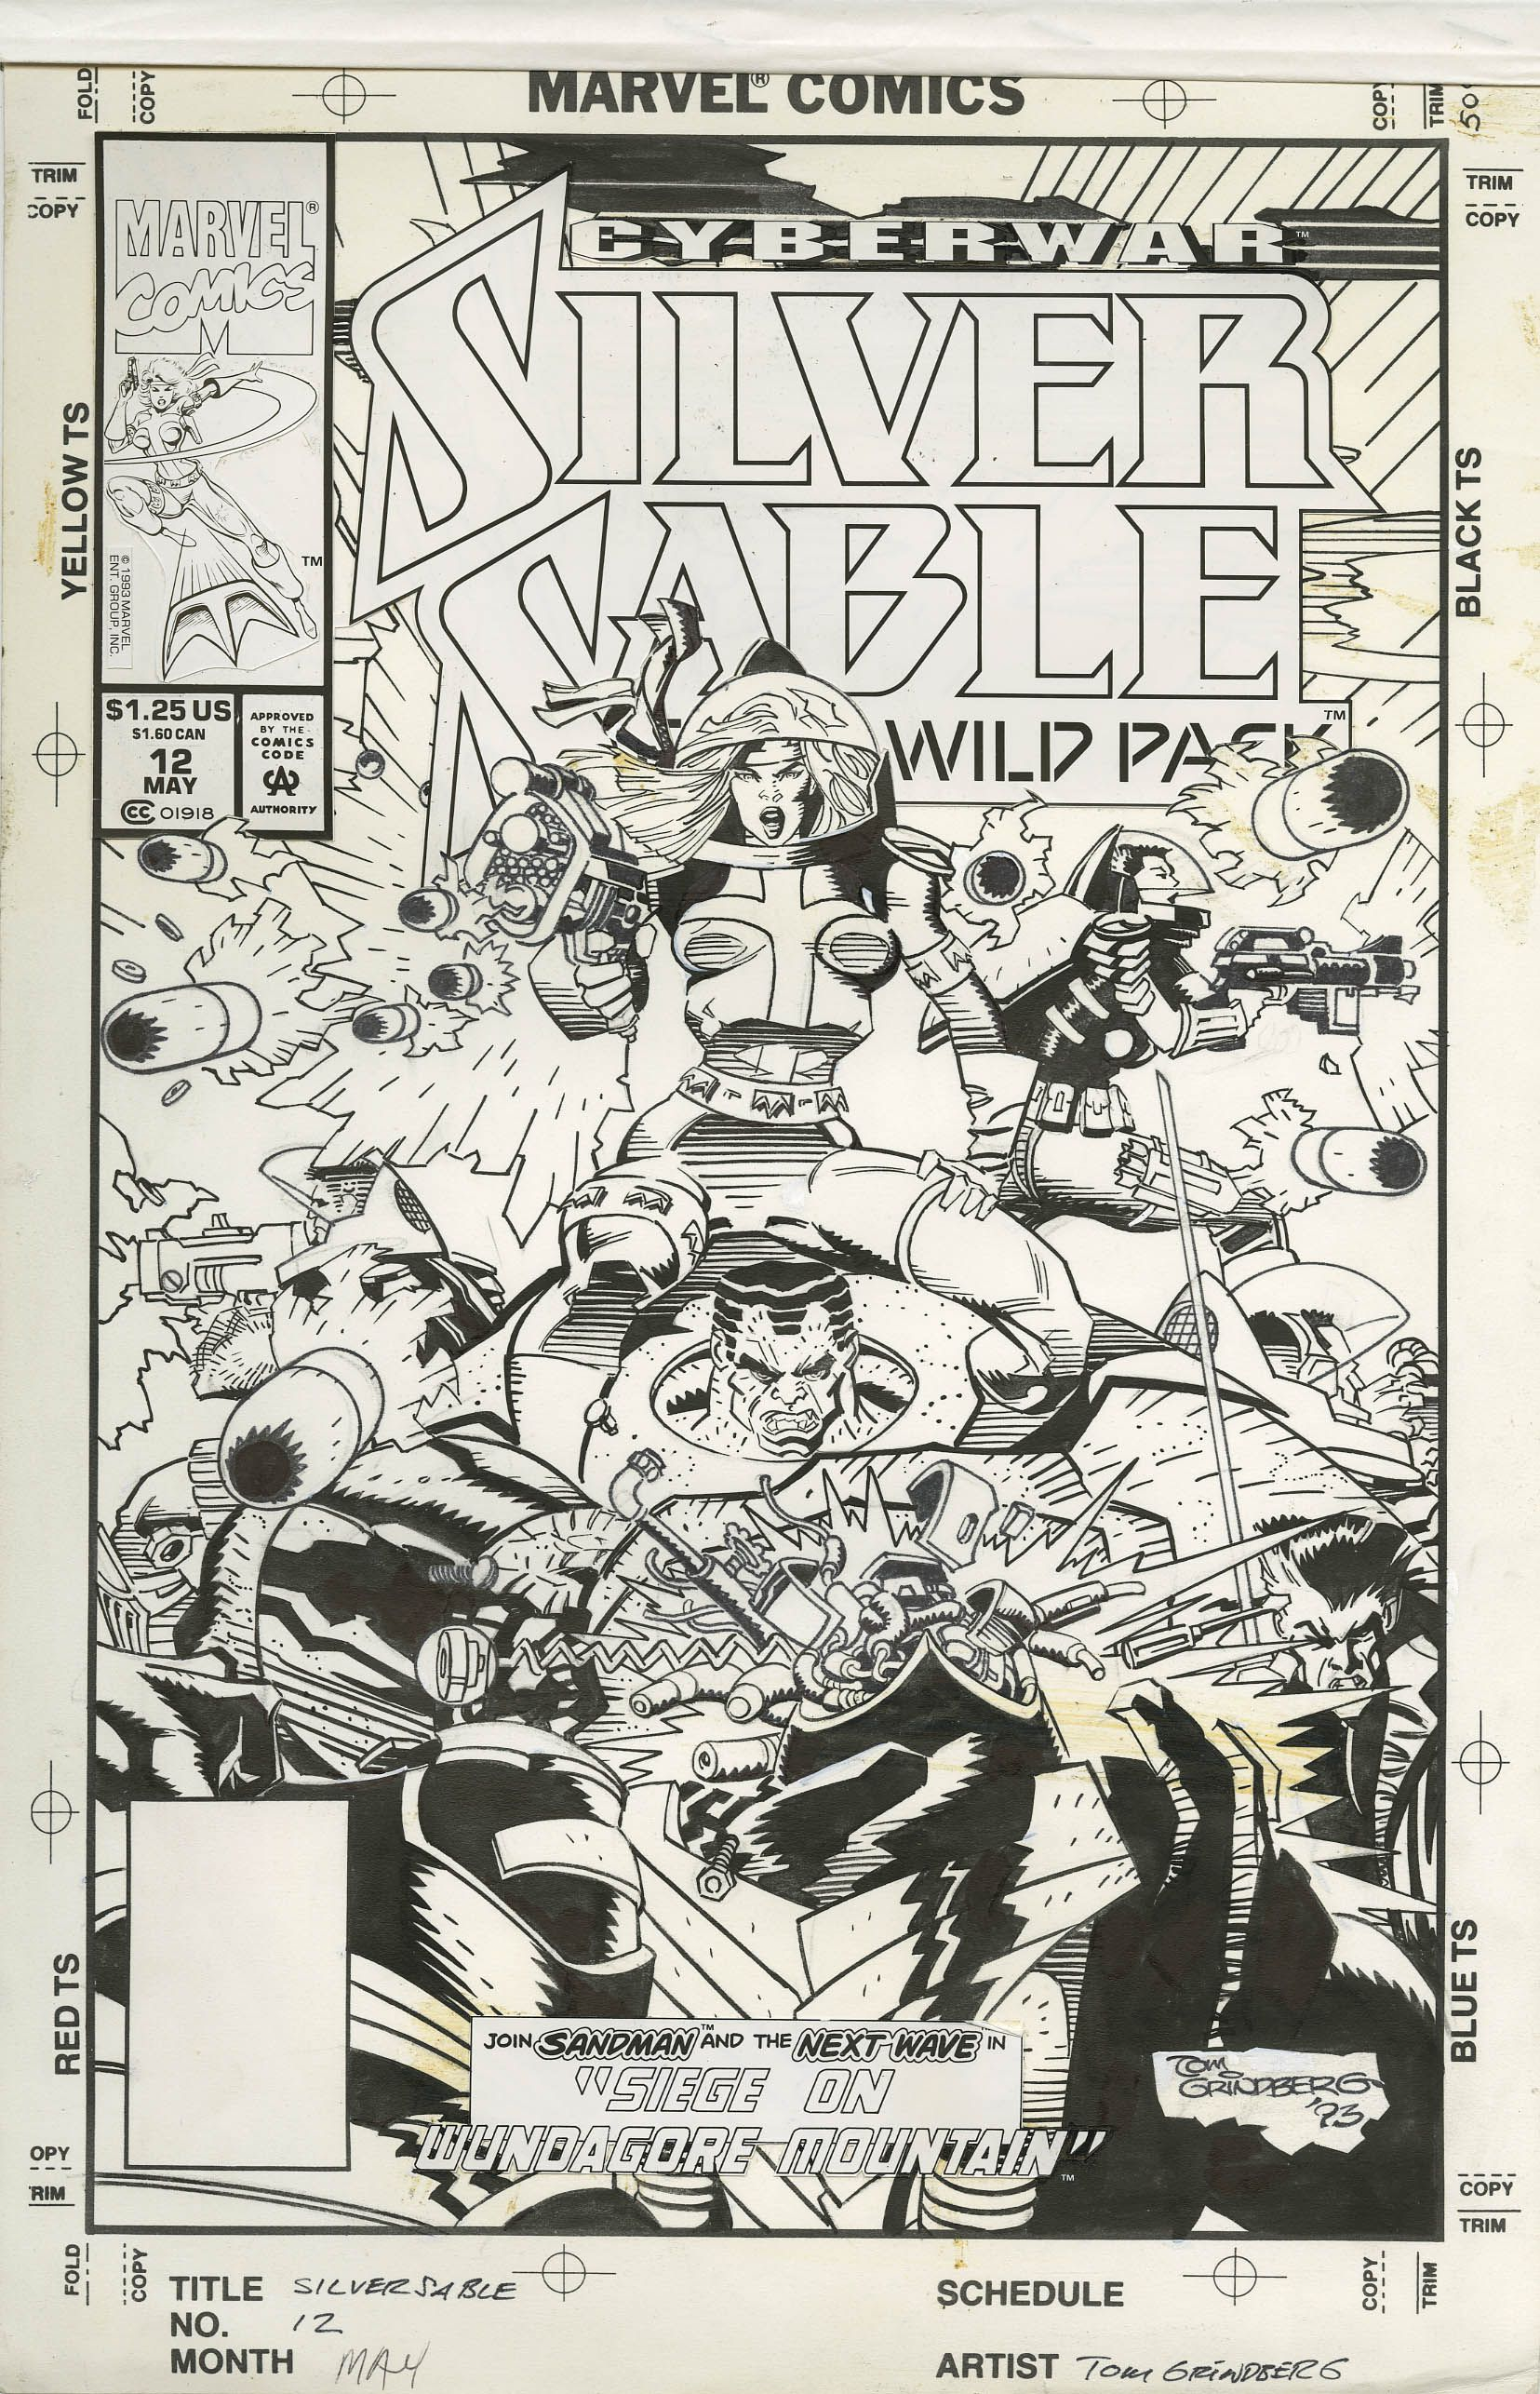 TOM GRINDBERG - SILVER SABLE AND THE WILD PACK #12 COVER 1993 - W.B.